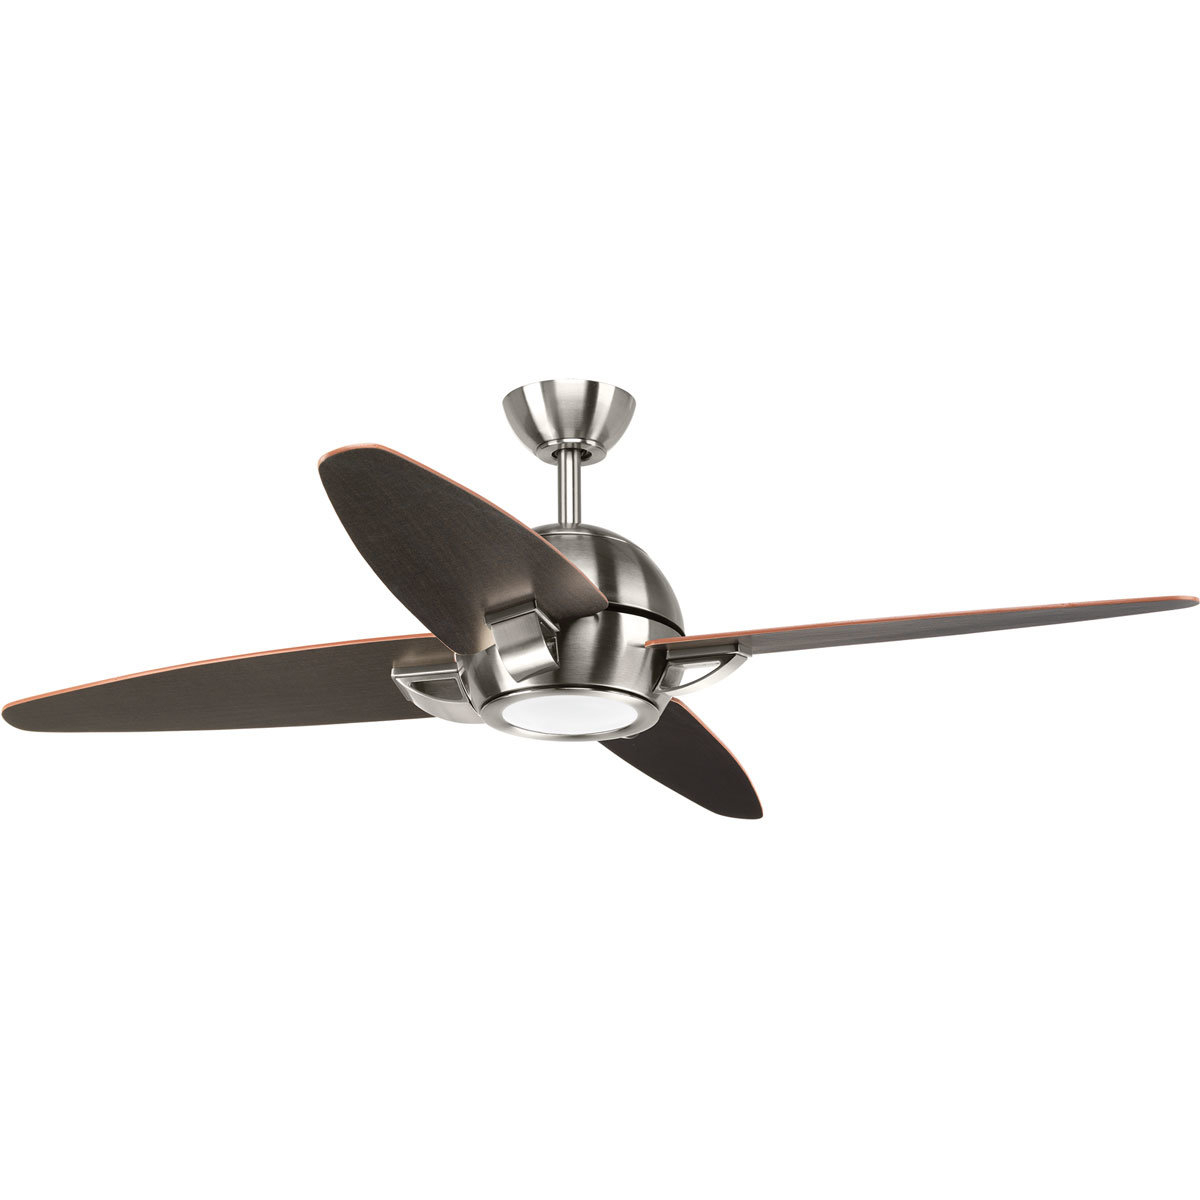 "54"" Ming 4 Blade Led Ceiling Fan With Remote With Widely Used Cranbrook 4 Blade Ceiling Fans (View 13 of 20)"